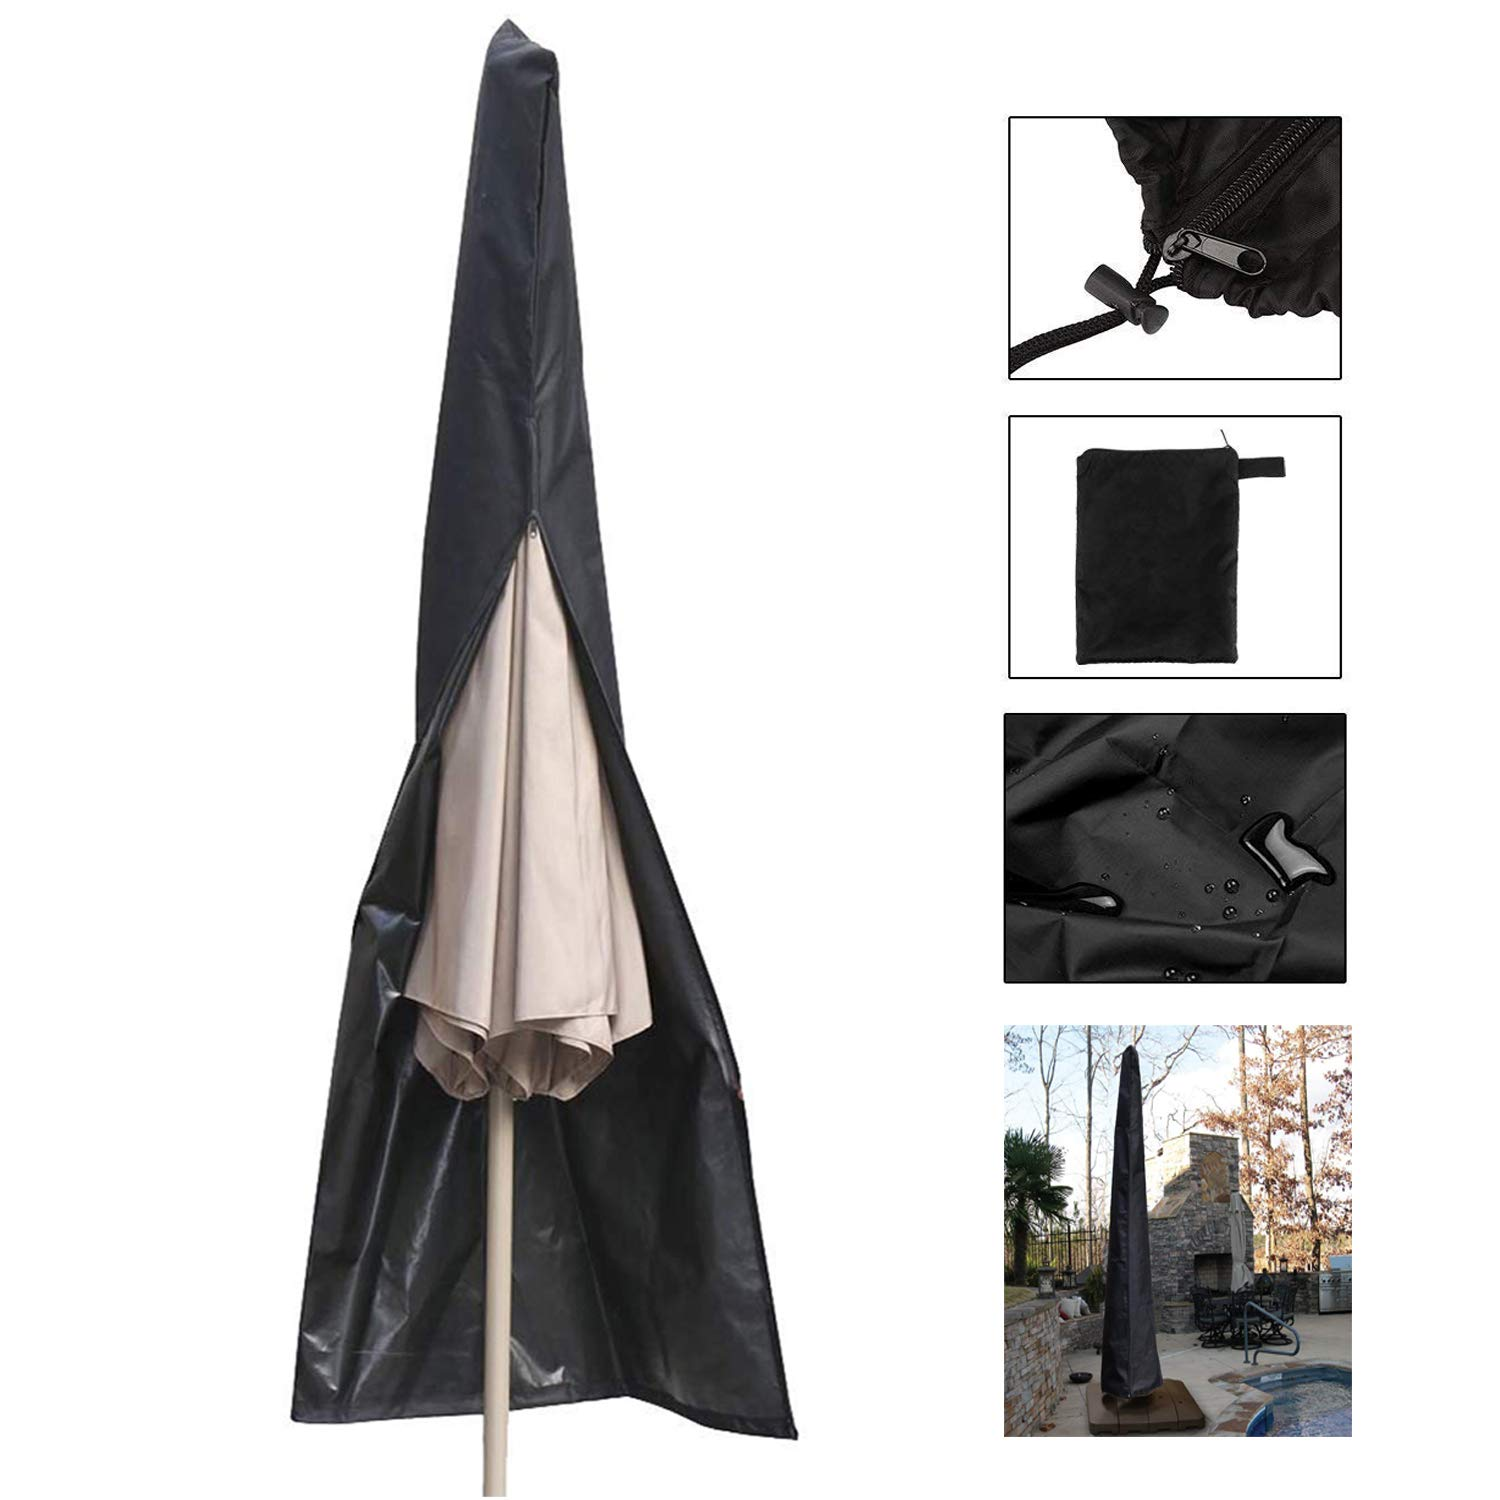 NicoleKayLan Waterproof Parasol Cover Garden Rotary Air Dryer Cover Heavy Duty UV Protected Banana Umbrella Cover Zip Draw String Design(Black)